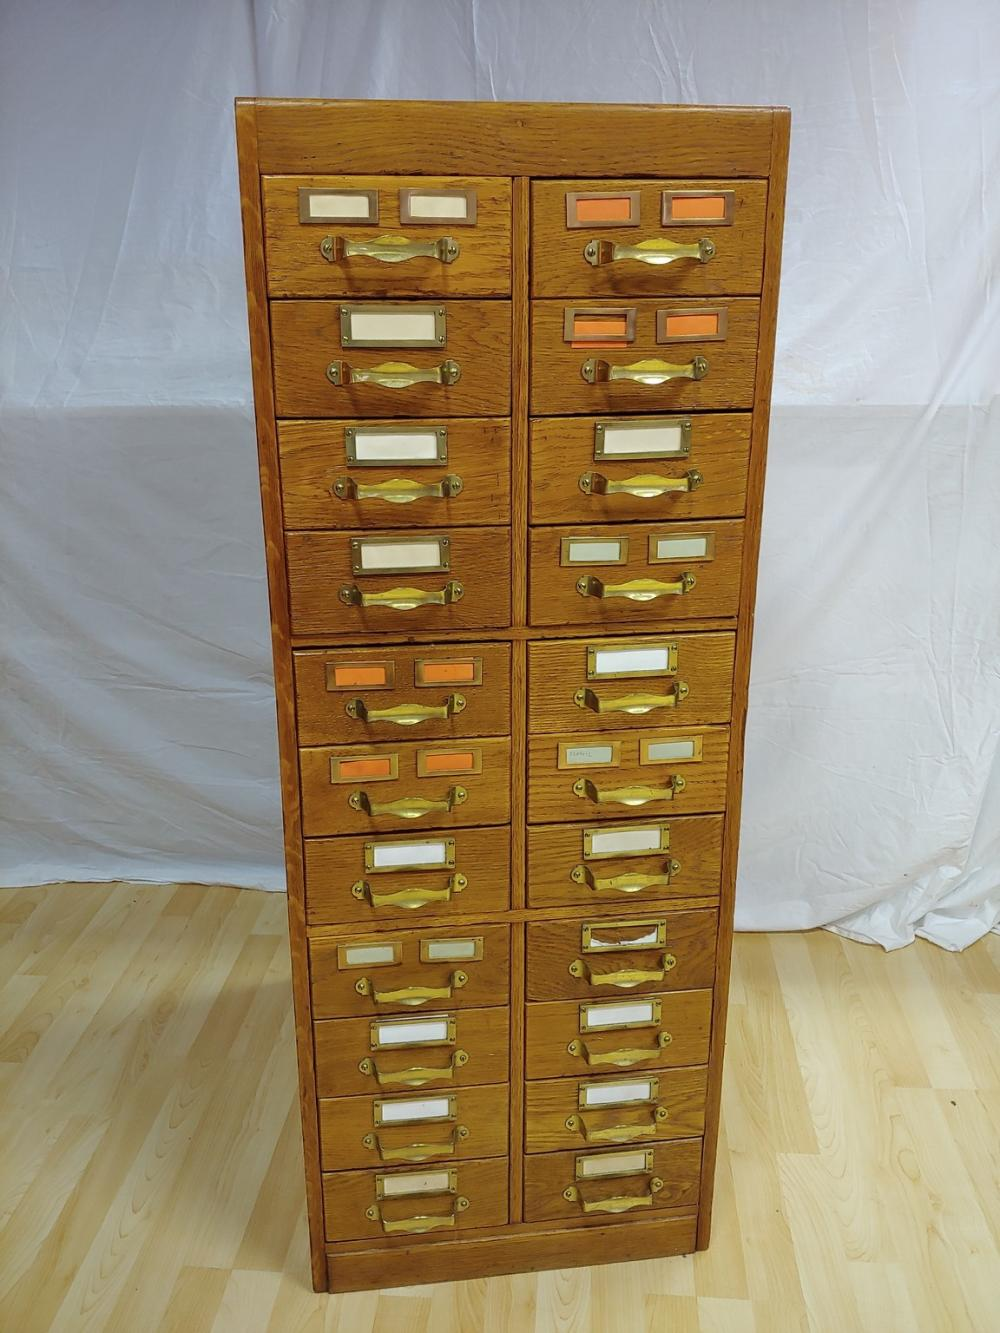 Wooden Bank of Drawers